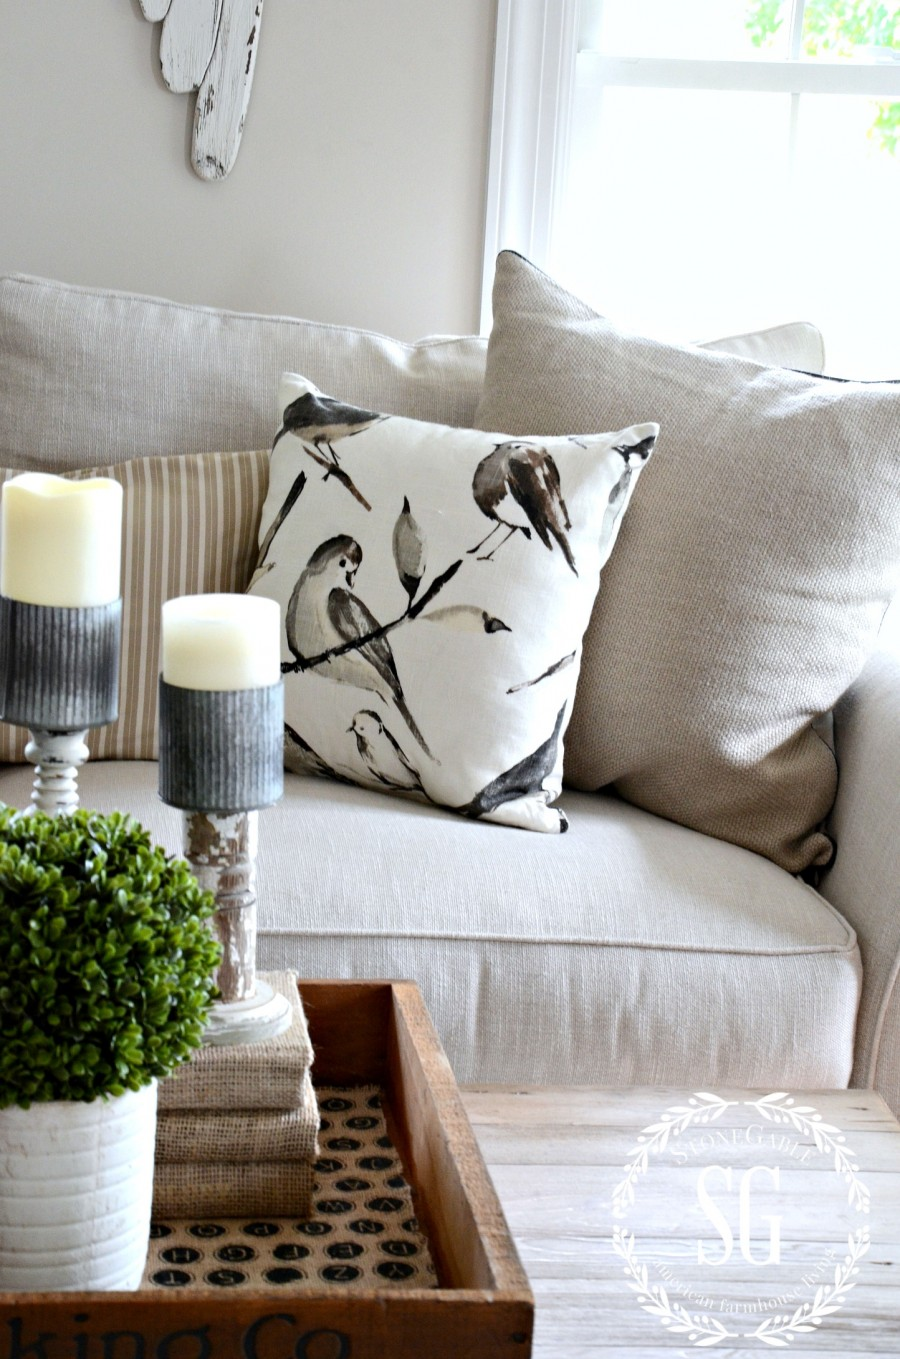 5 INEXPENSIVE WAYS TO REFRESH YOUR LIVING ROOM- Change up pillows-stonegableblog.com